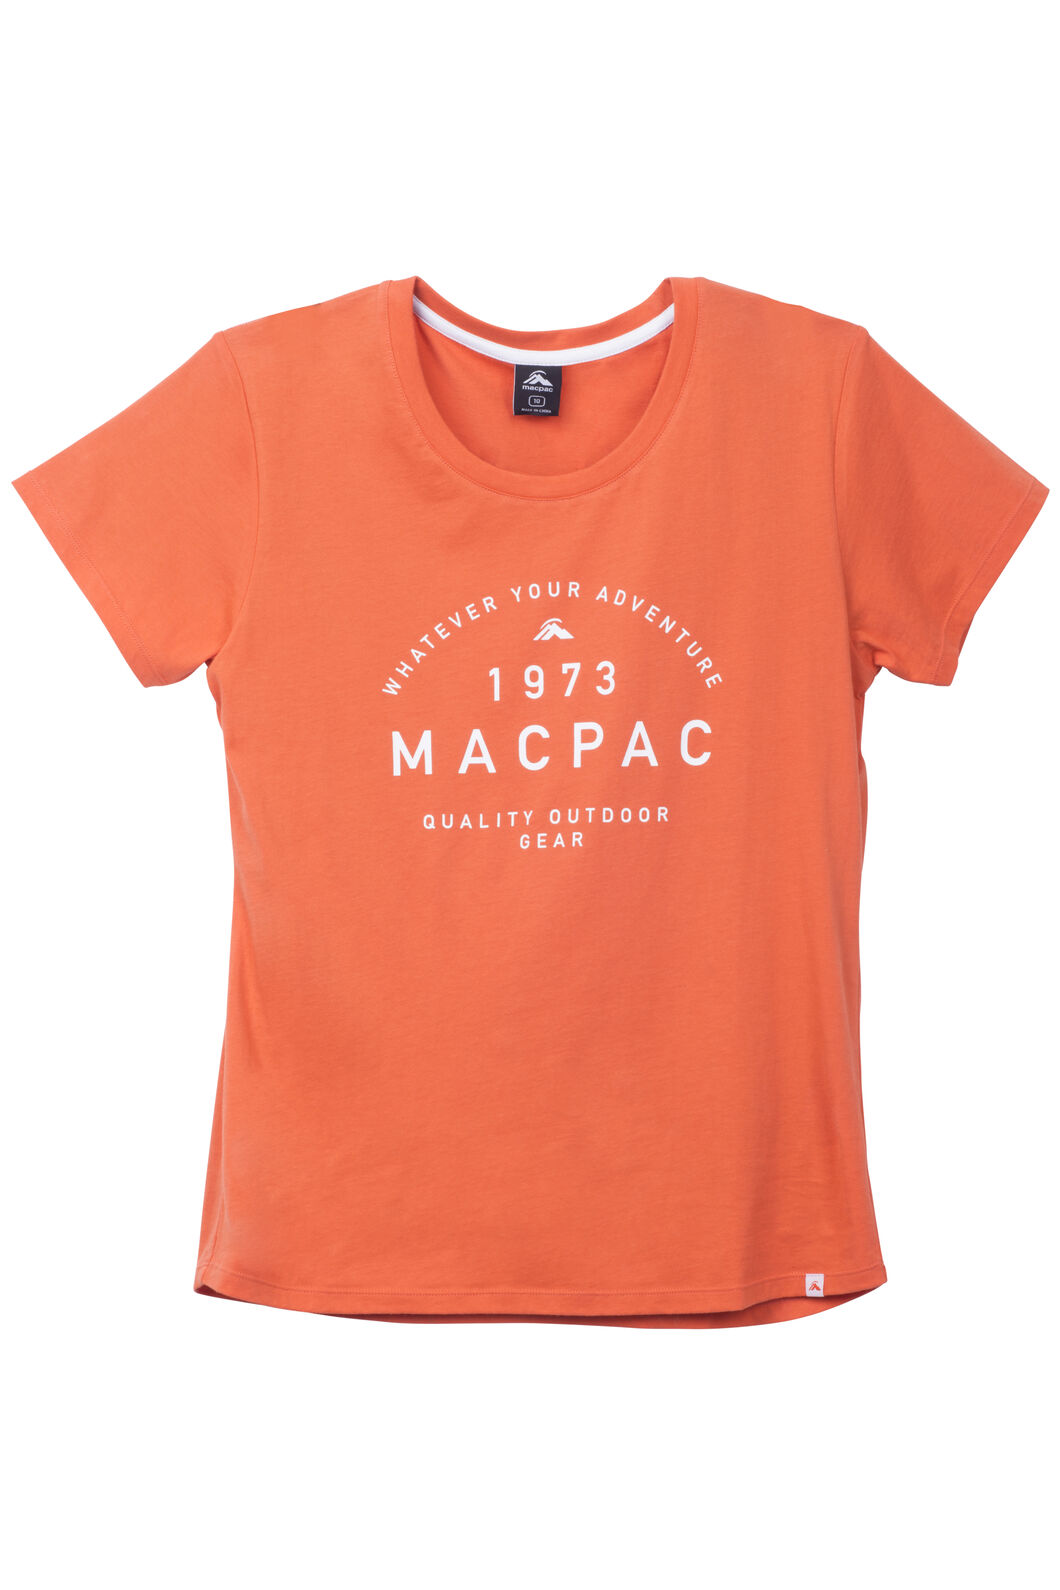 Macpac Adventure Organic Cotton Tee - Women's, Koi, hi-res